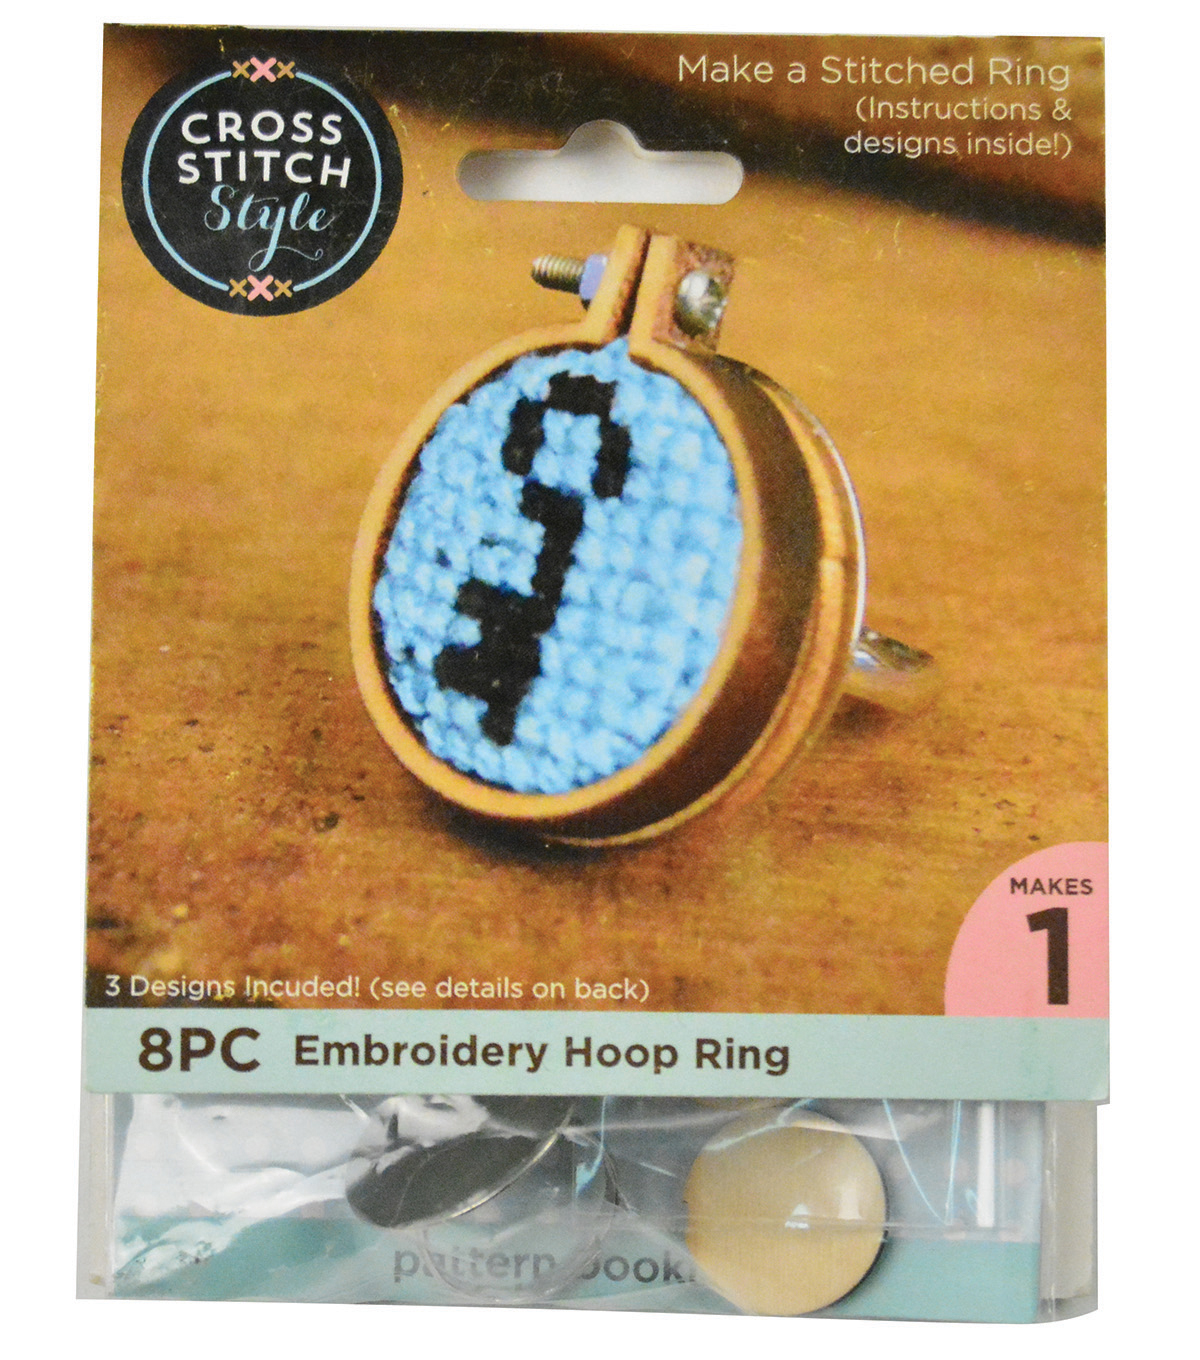 Cross Stitch Style Mini Embroidery Hoop Ring